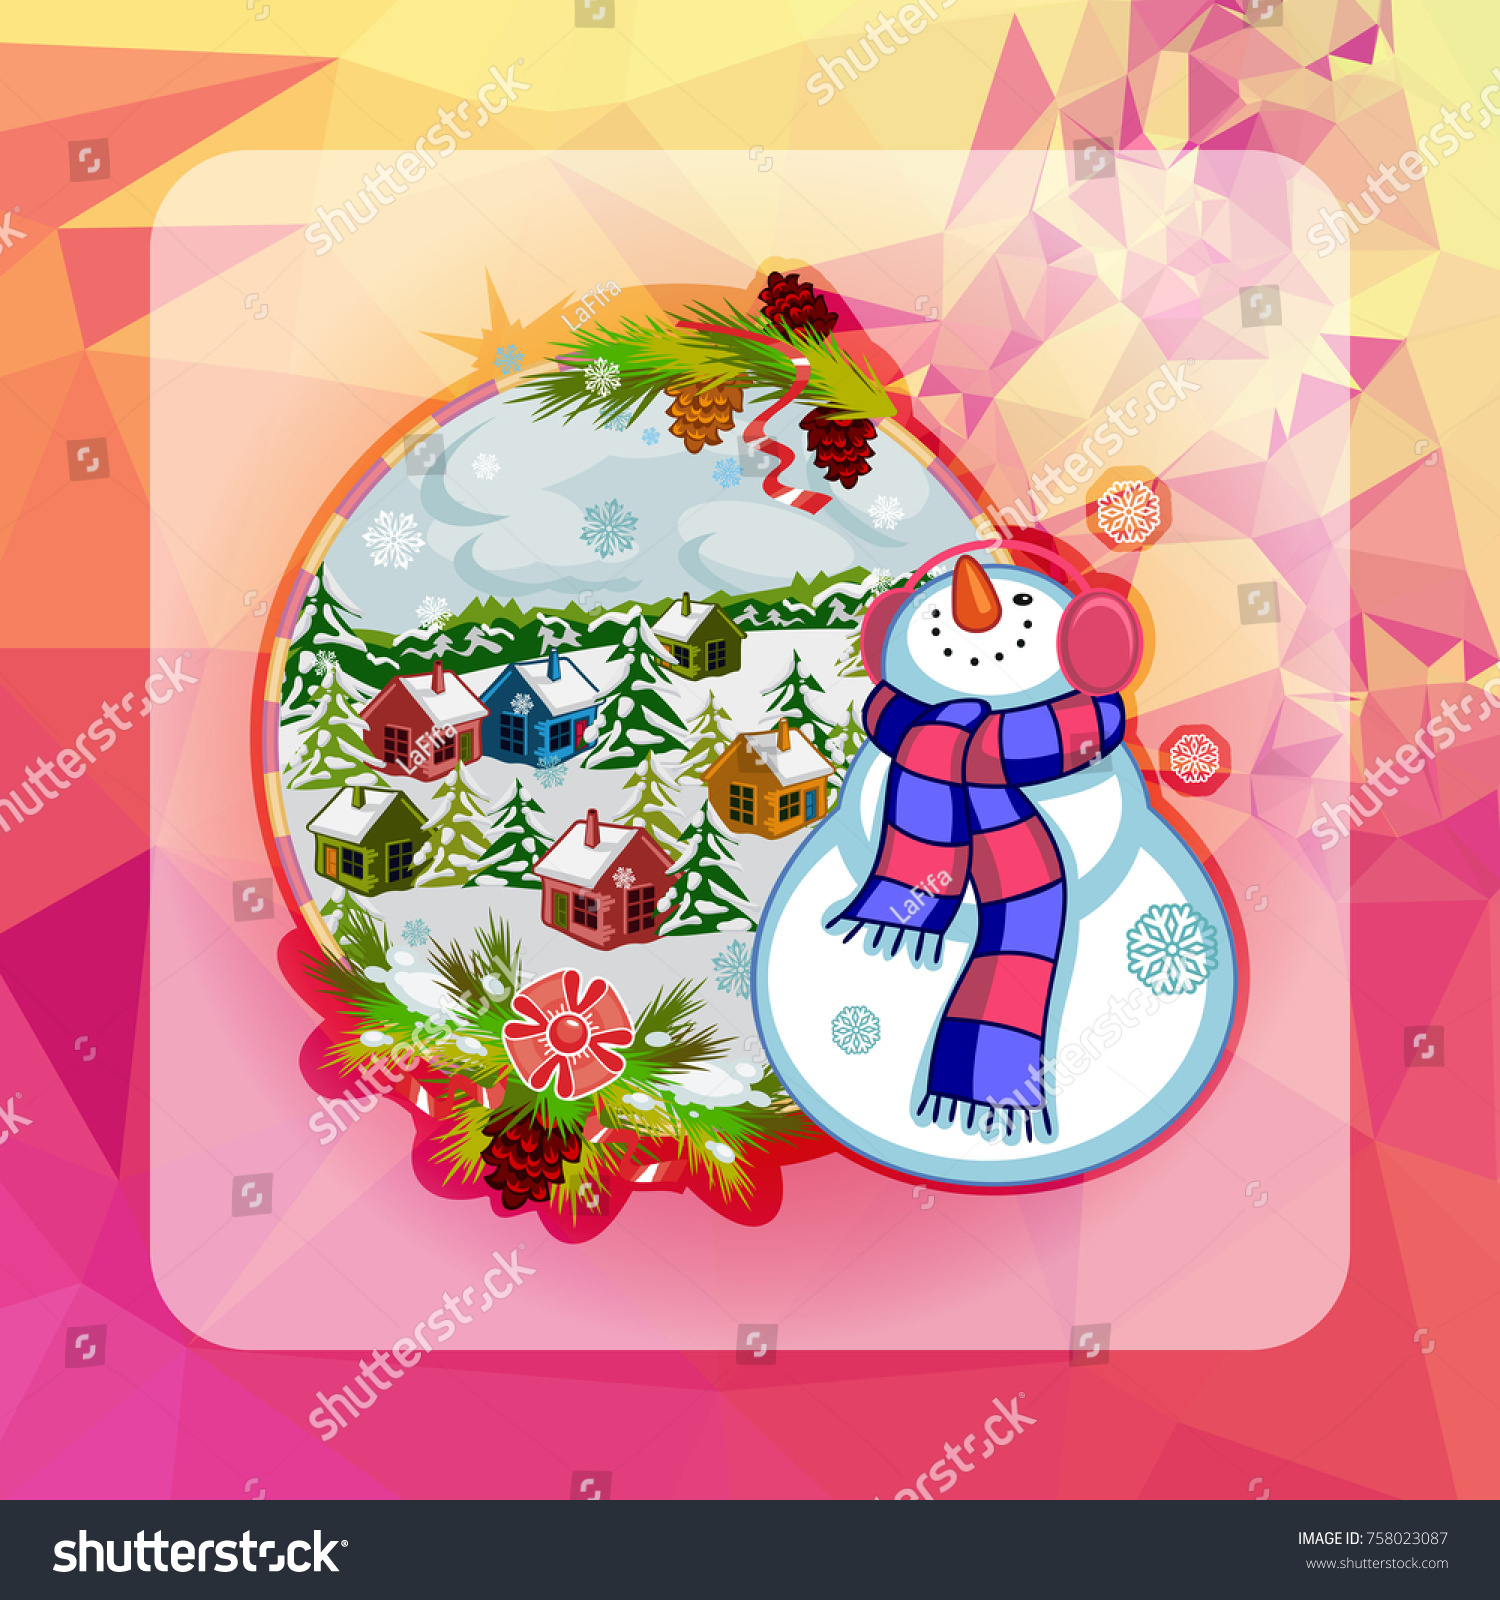 Holiday Square Christmas Card Funny Snowman Stock Illustration